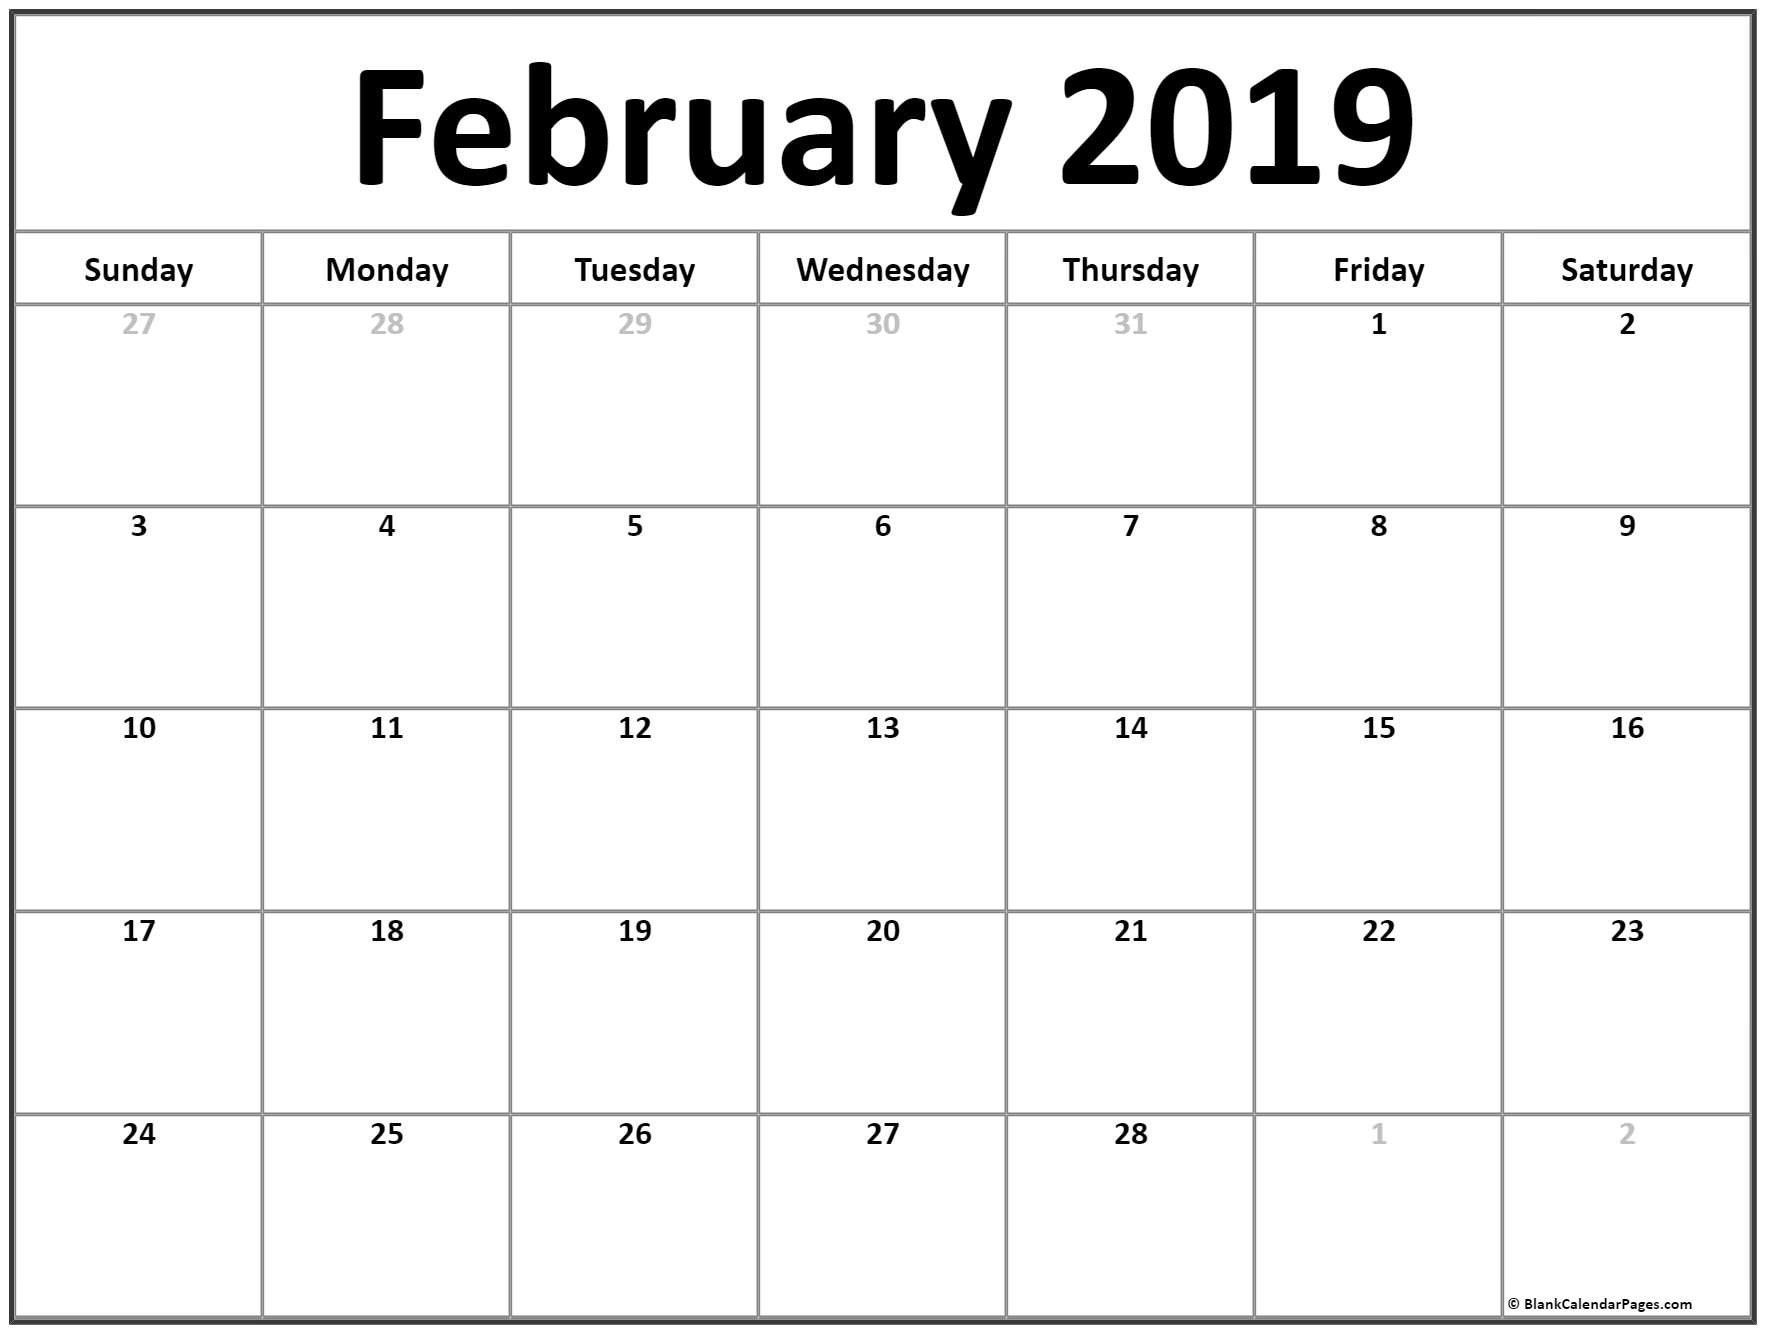 Printable Calendar Pages February 2019 Blank Calendar February 2019 Printable #february #february2019